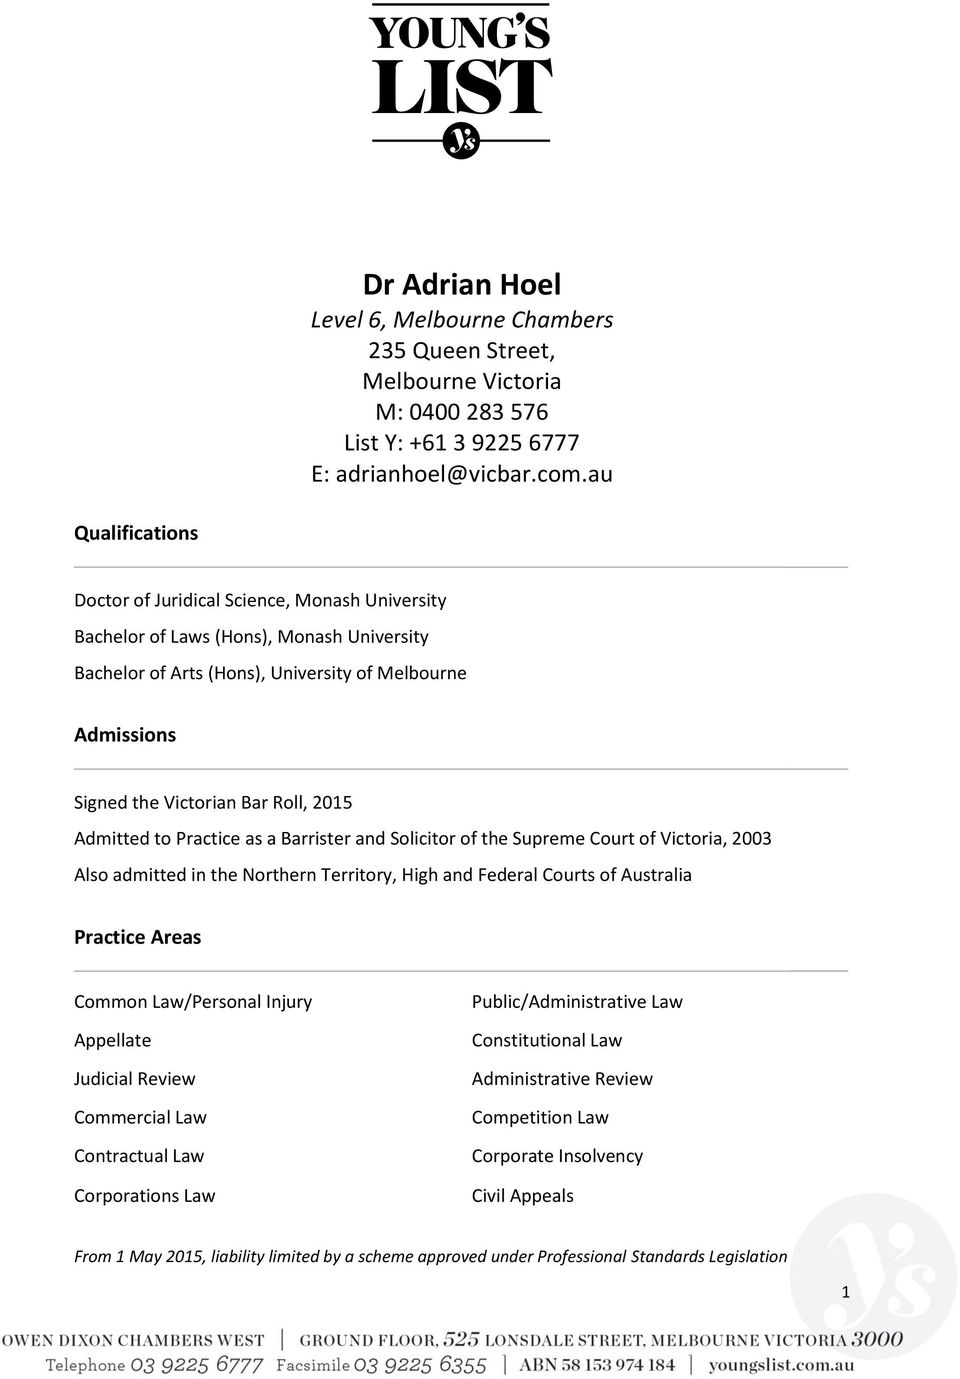 2015 Admitted to Practice as a Barrister and Solicitor of the Supreme Court of Victoria, 2003 Also admitted in the Northern Territory, High and Federal Courts of Australia Practice Areas Common